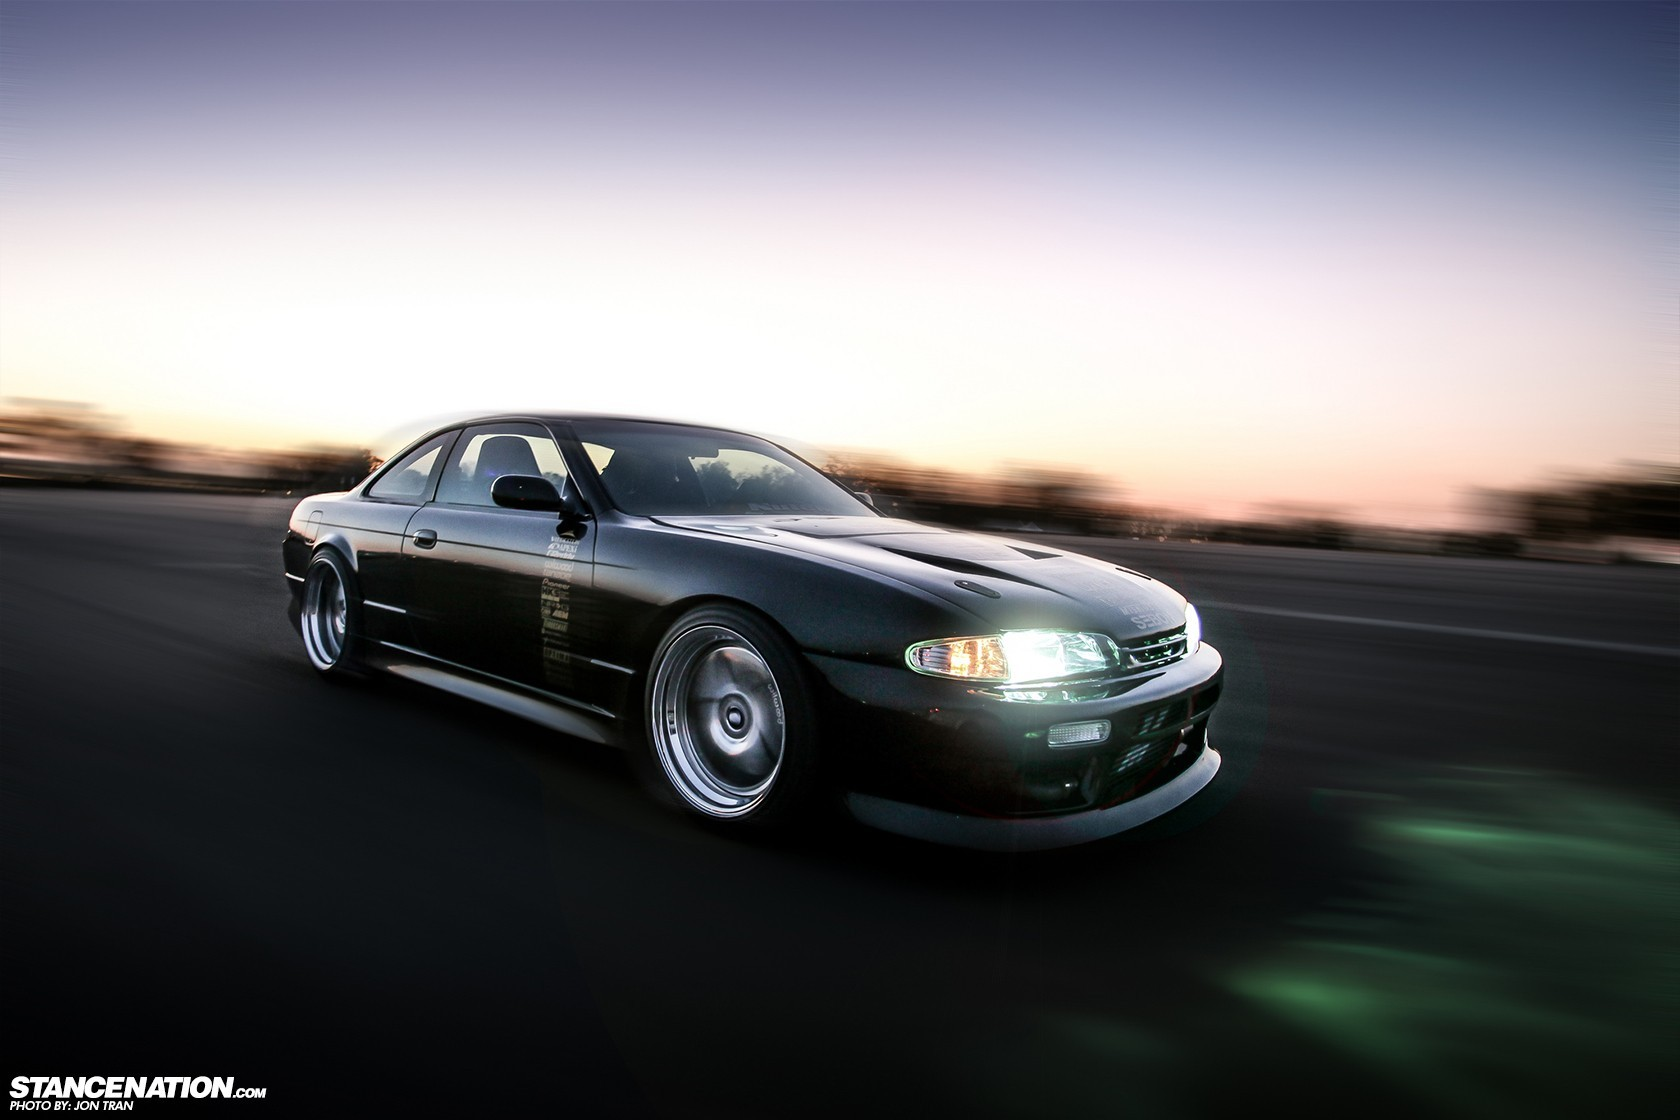 Nissan Stancenation Stanceworks S14 Stance Wallpaper HD Wallpapers Download Free Images Wallpaper [1000image.com]